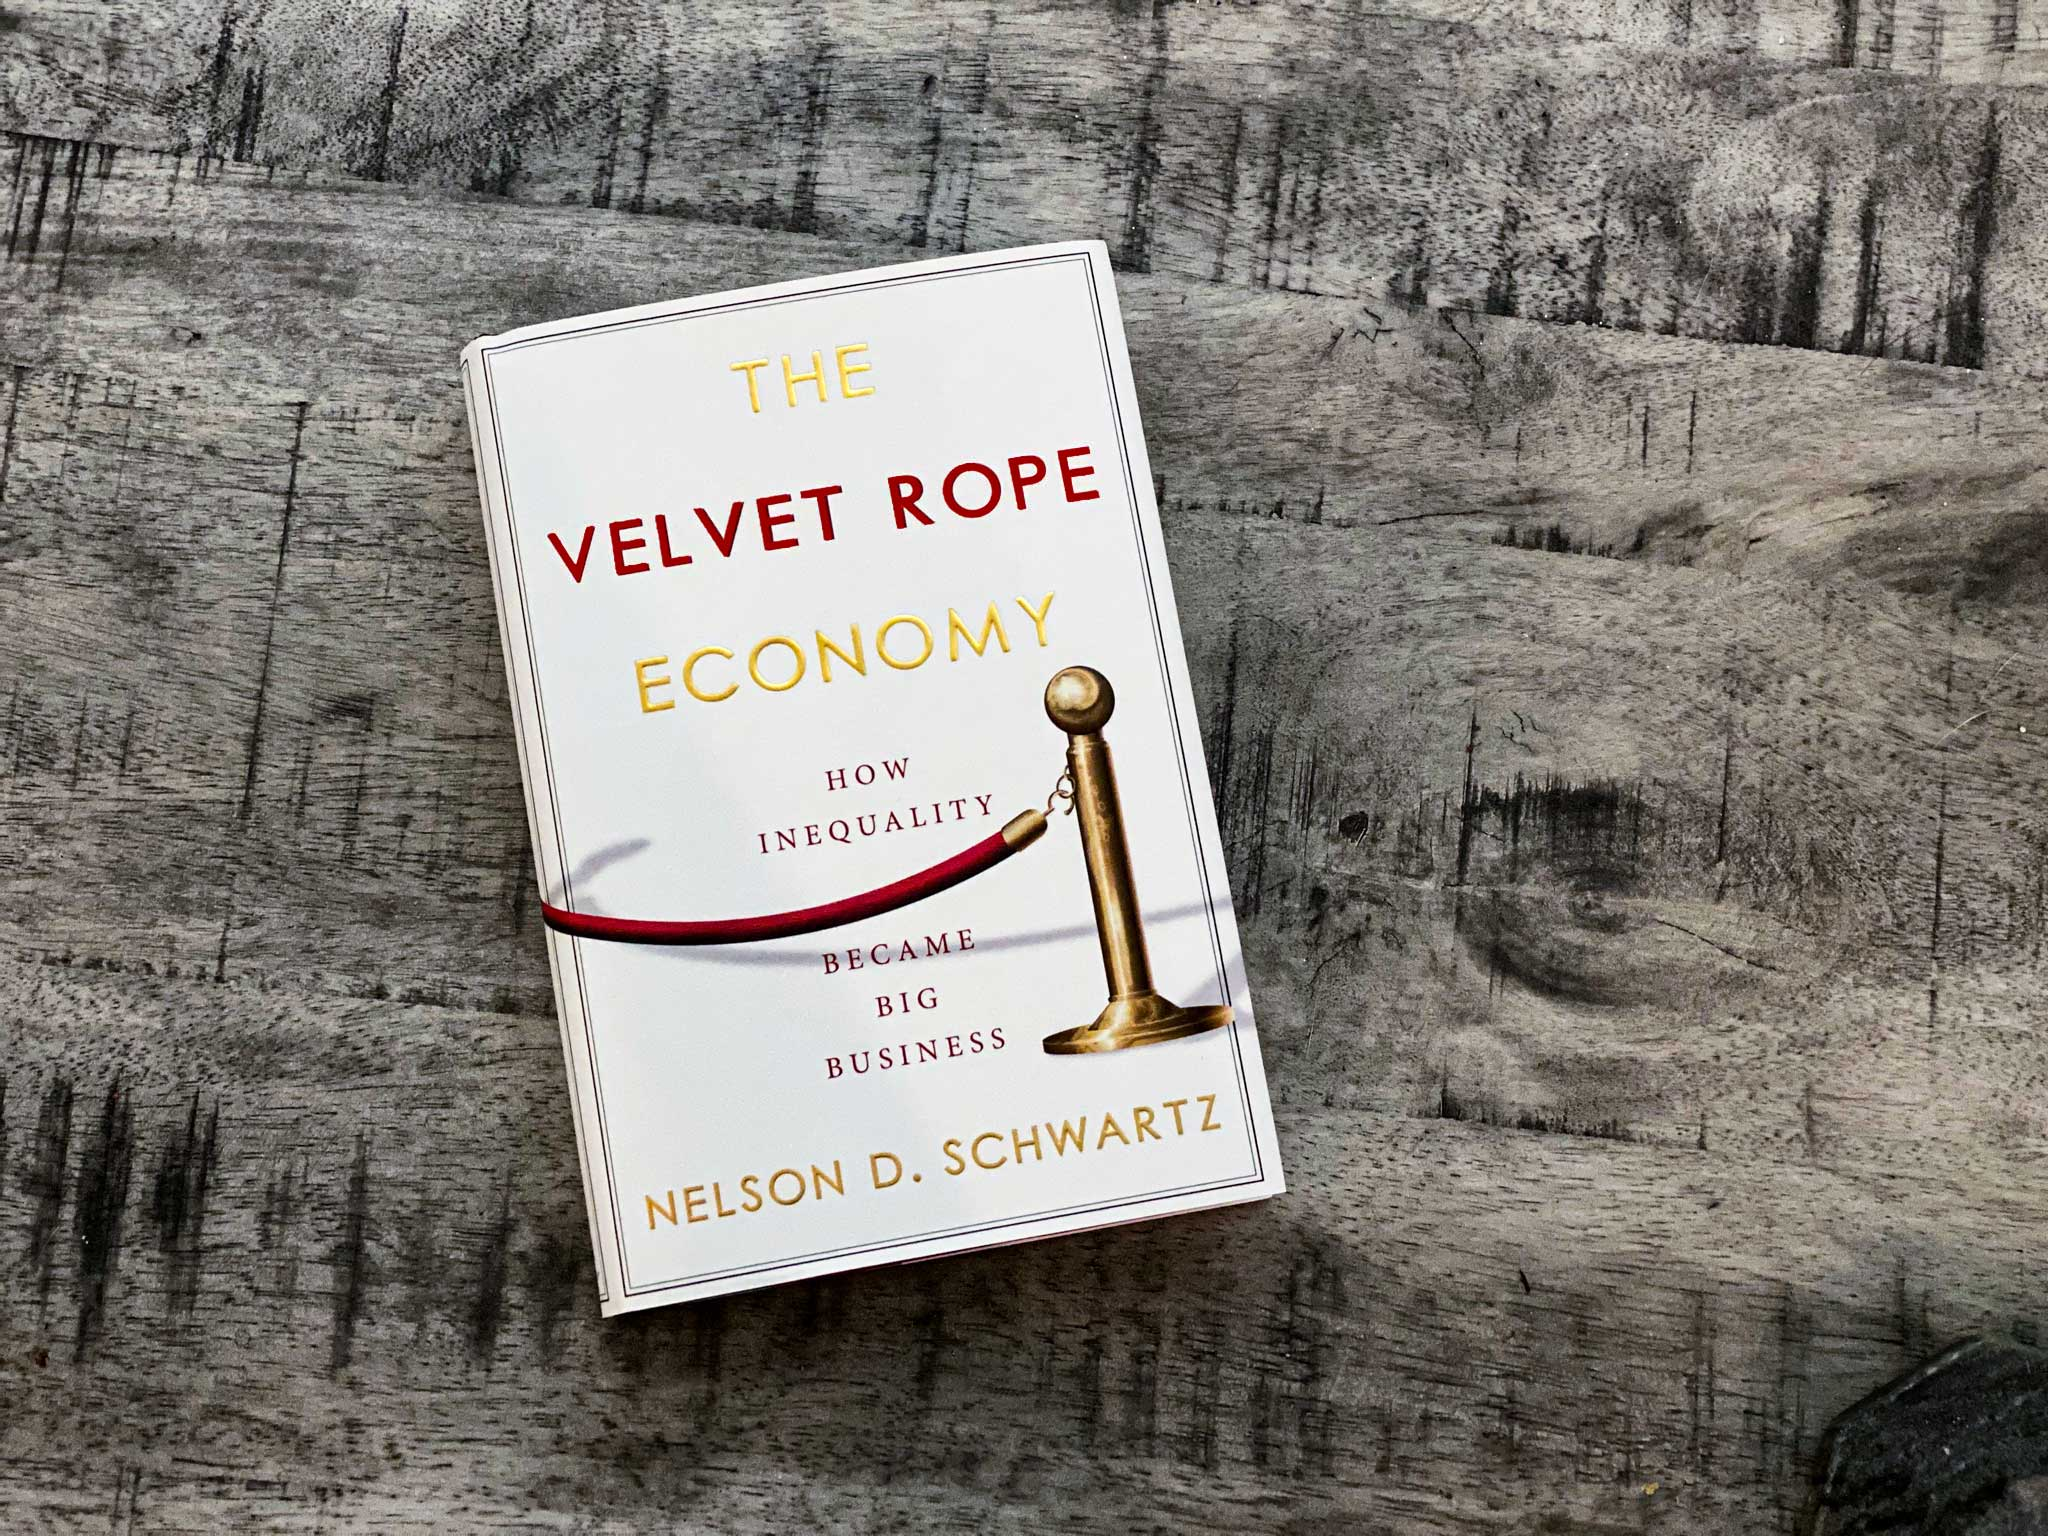 The Velvet Rope Economy - Book